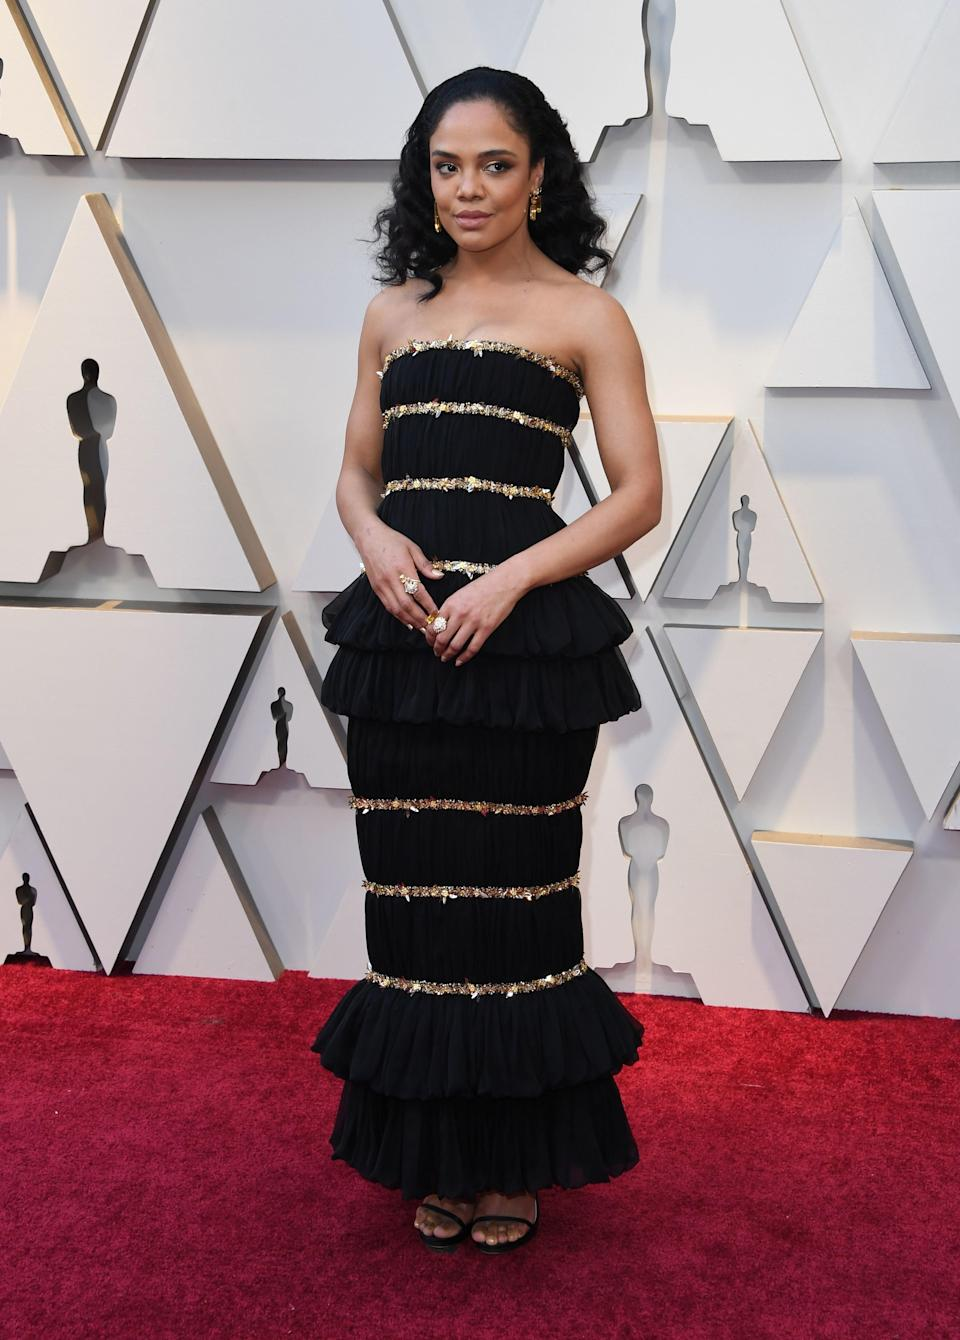 Tessa Thompson in Chanel Couture, Chanel jewelry and Jimmy Choo heels